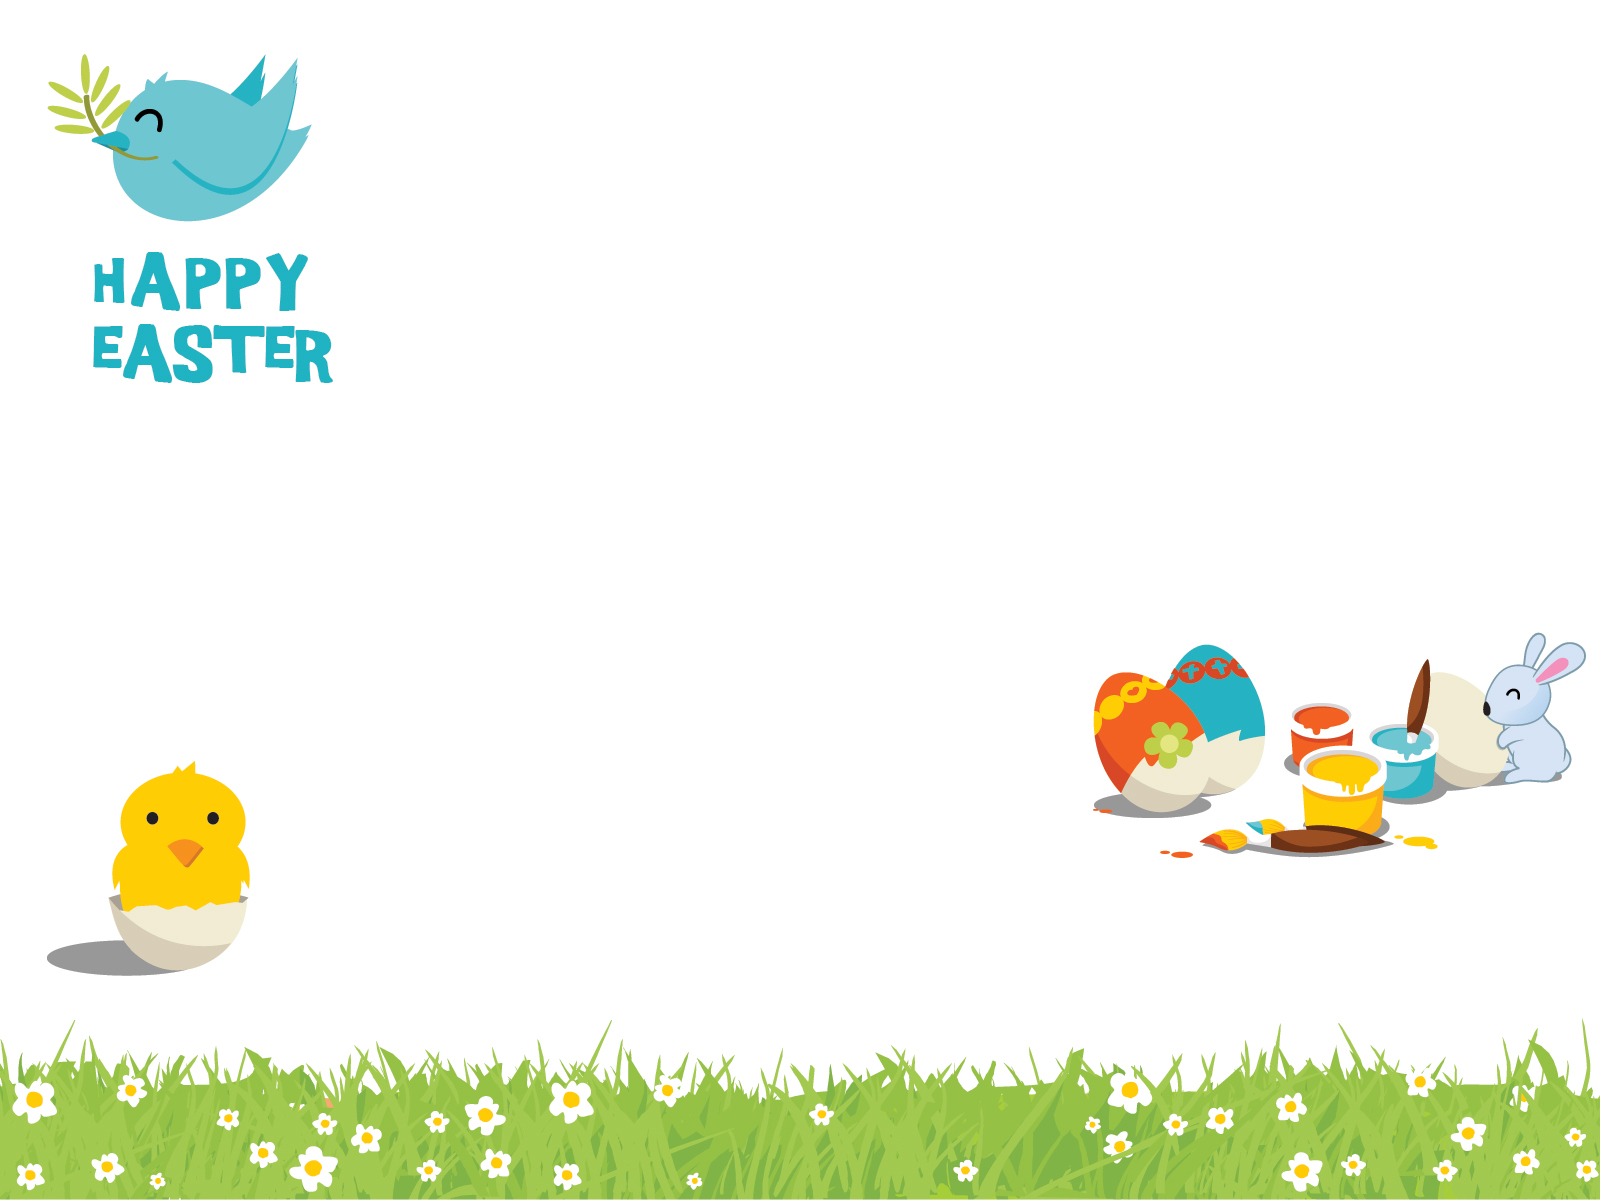 Happy Easter Cartoon Wallpaper Desktop